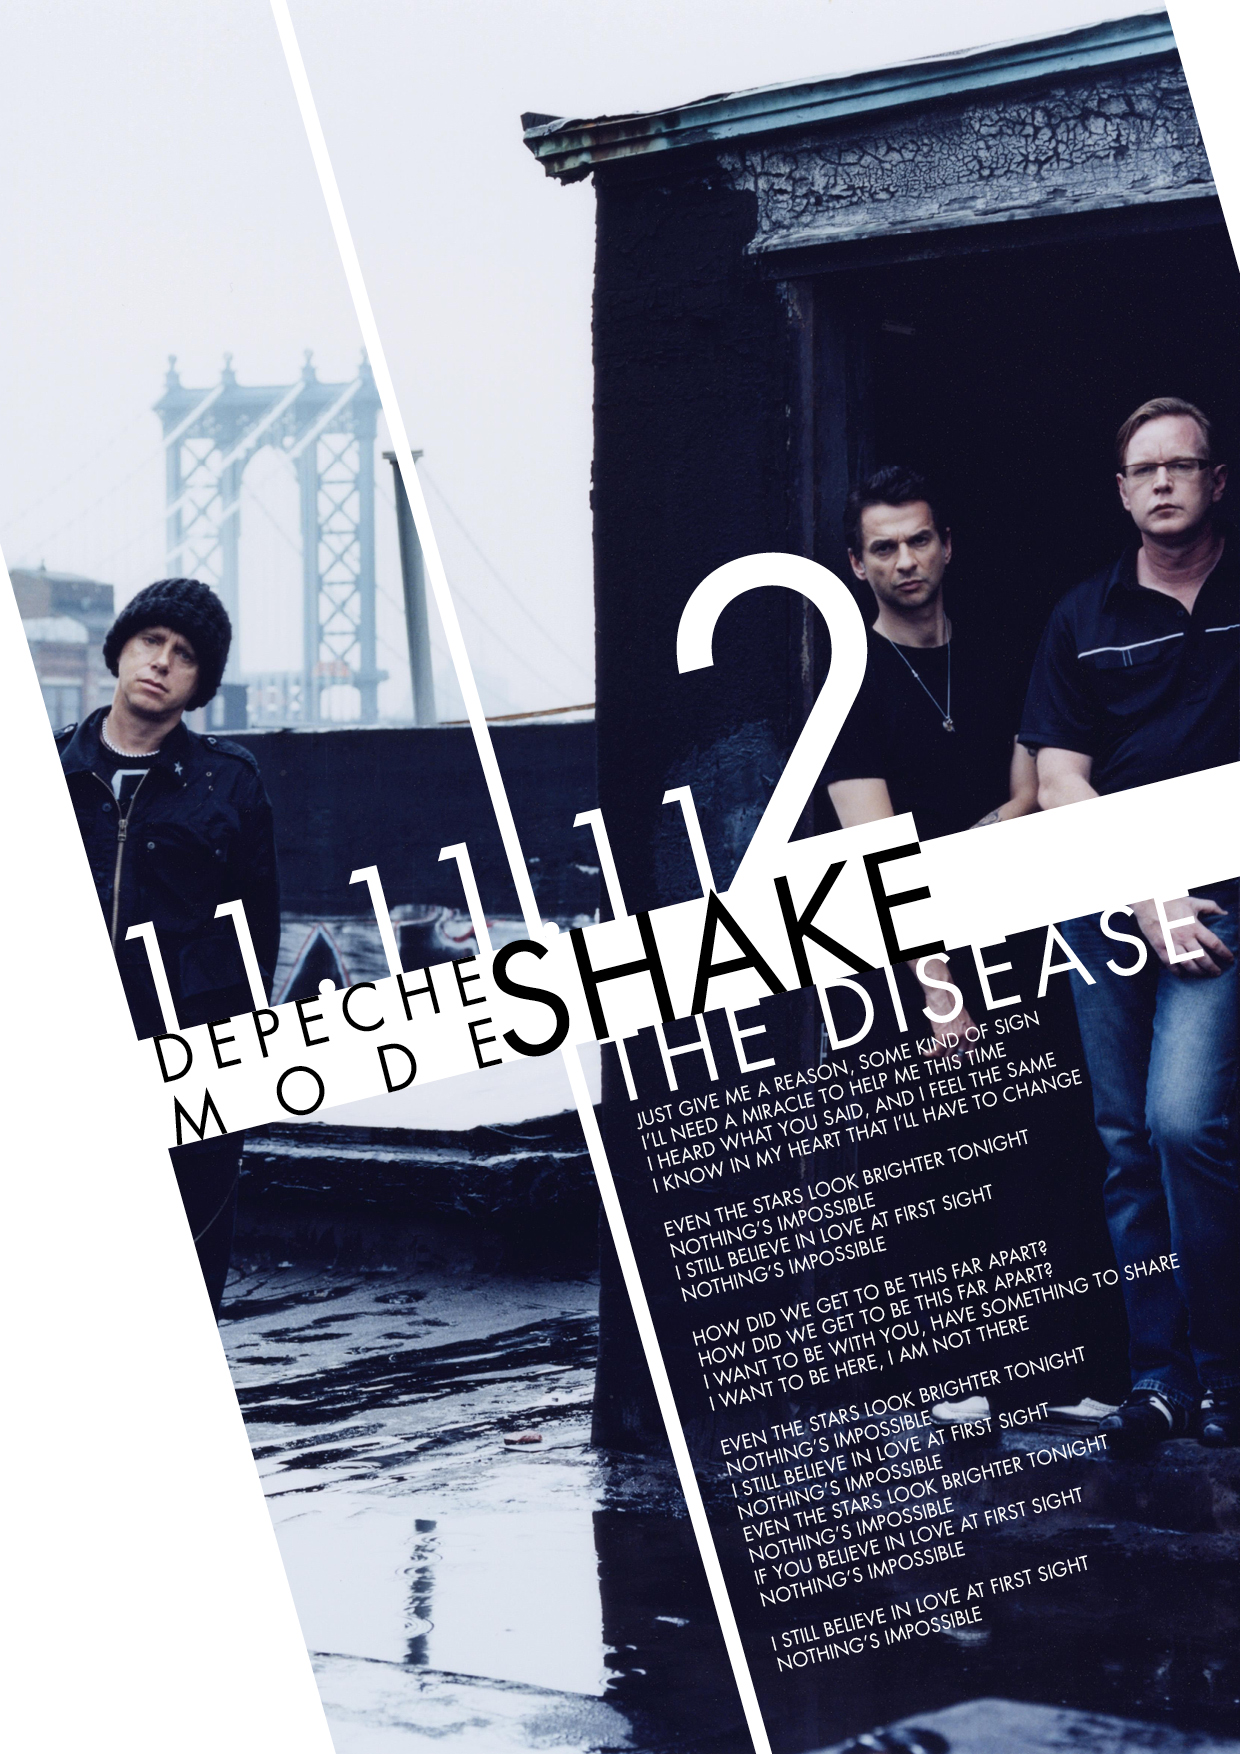 http://www.shakethedisease.fr/teasings/playing.jpg